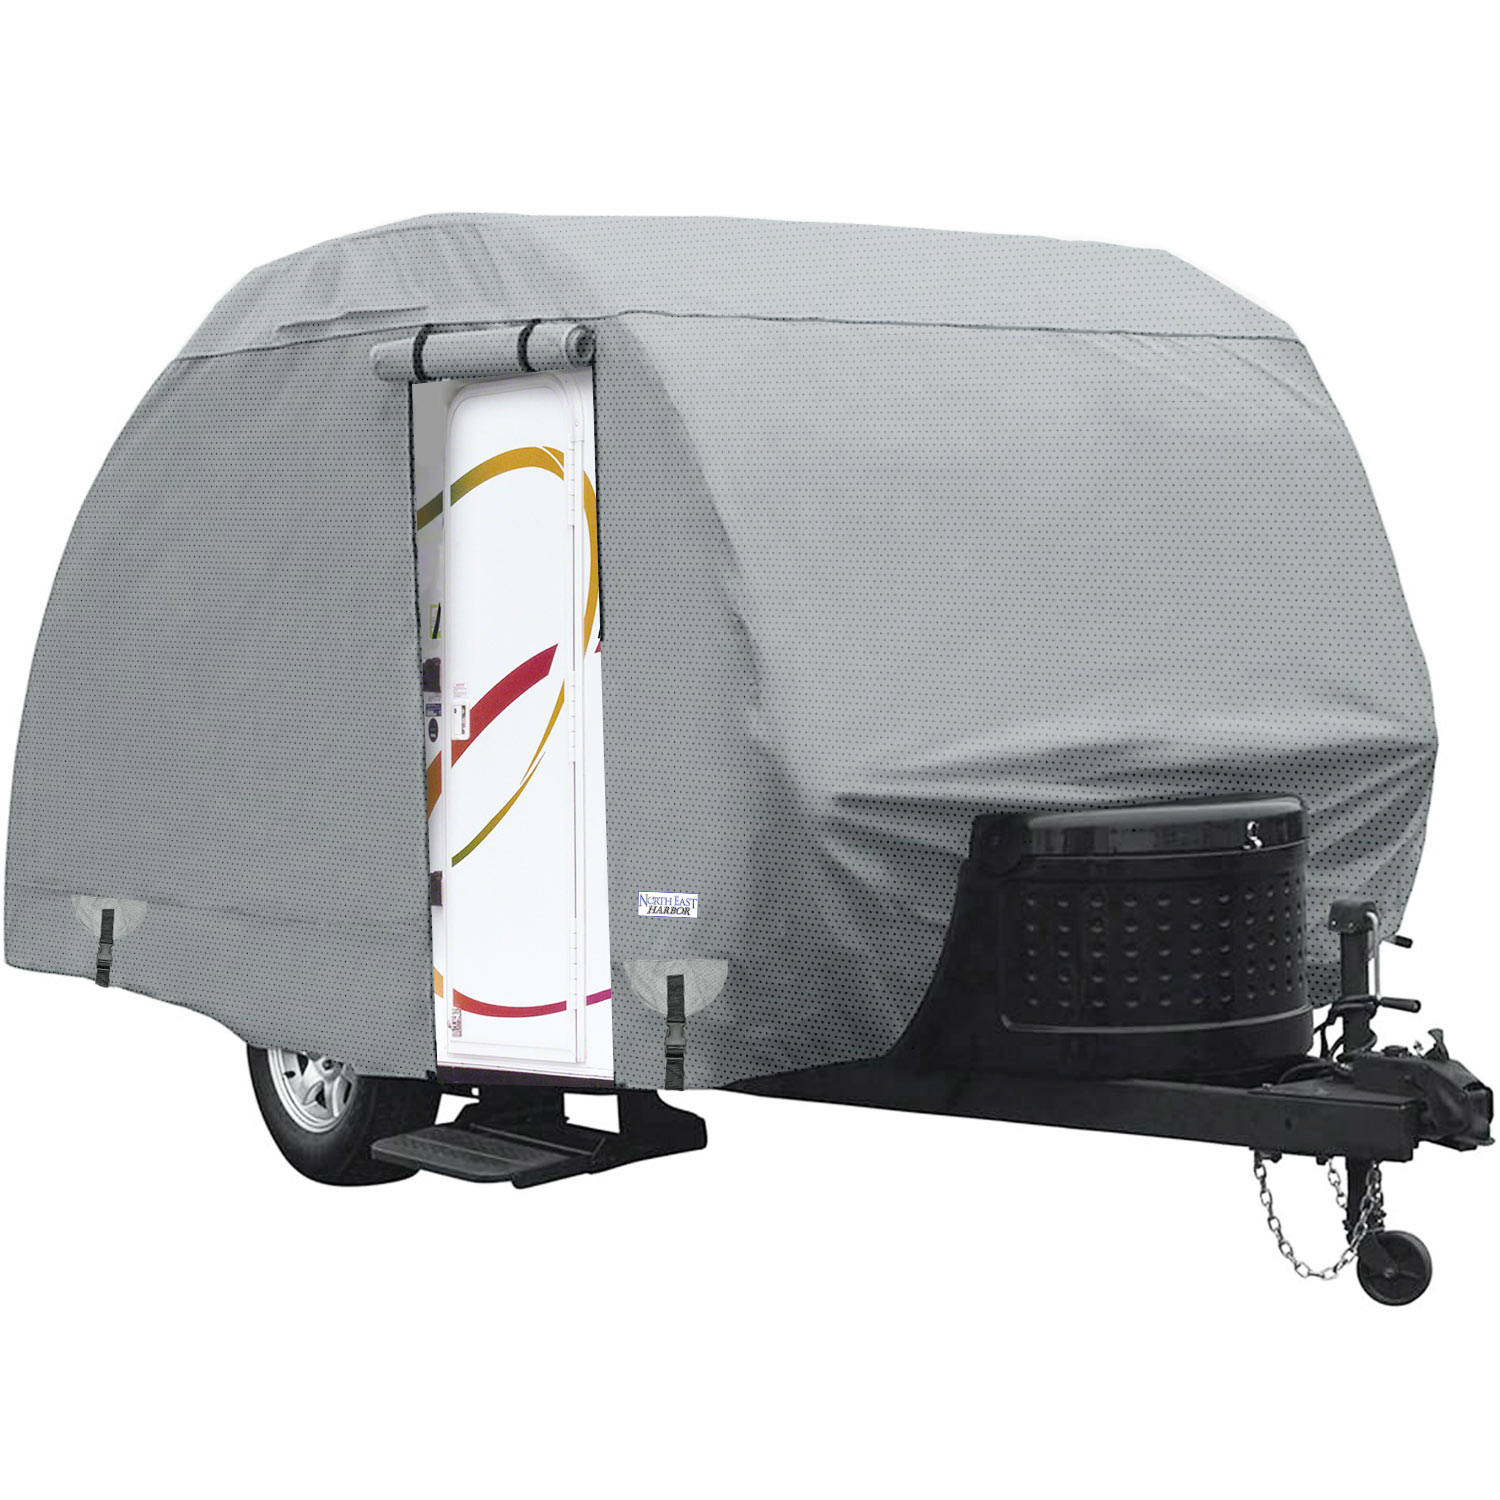 Length Trailer Poly Pro 3 Teardrop Cover Fits R-Pod Fits up to 20 FT